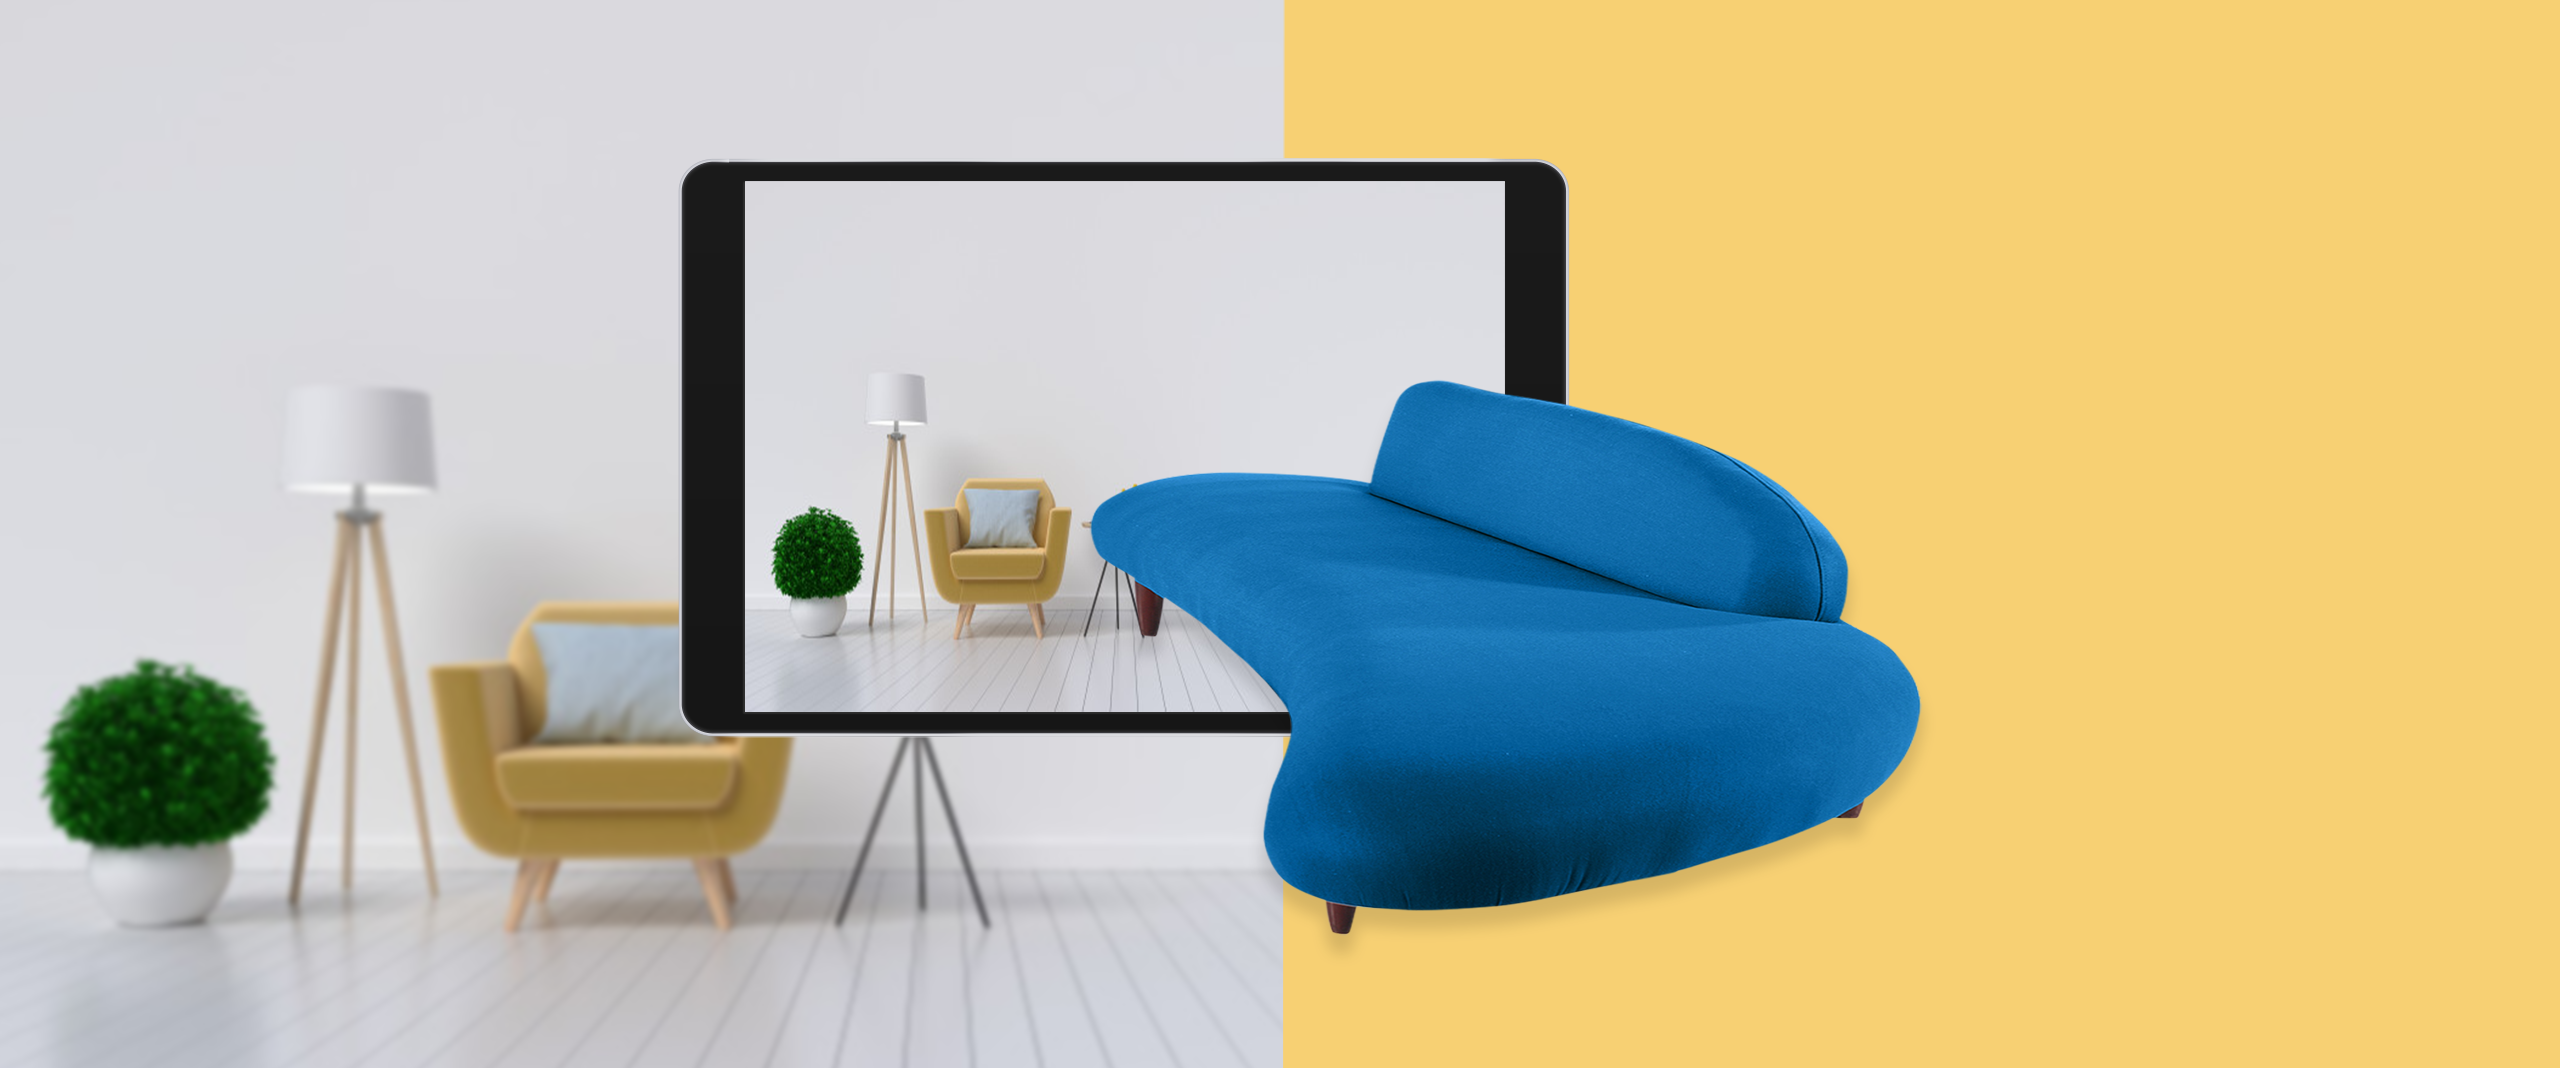 3d-configurator-online-Ipad-Mockup-couch-saphire-2